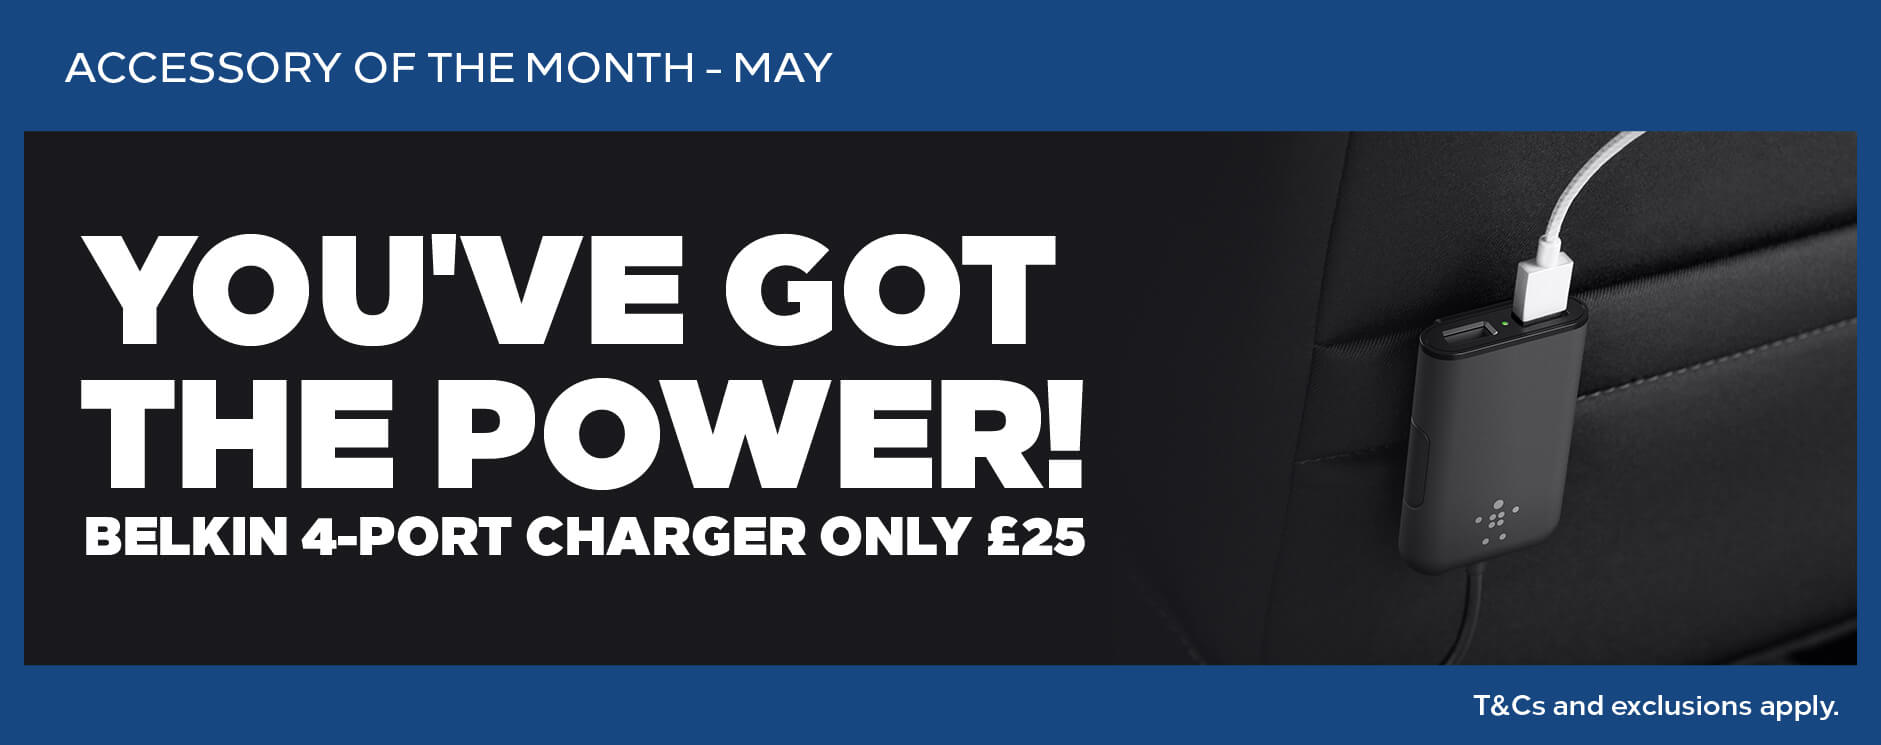 Vauxhall Accessory of the month - May